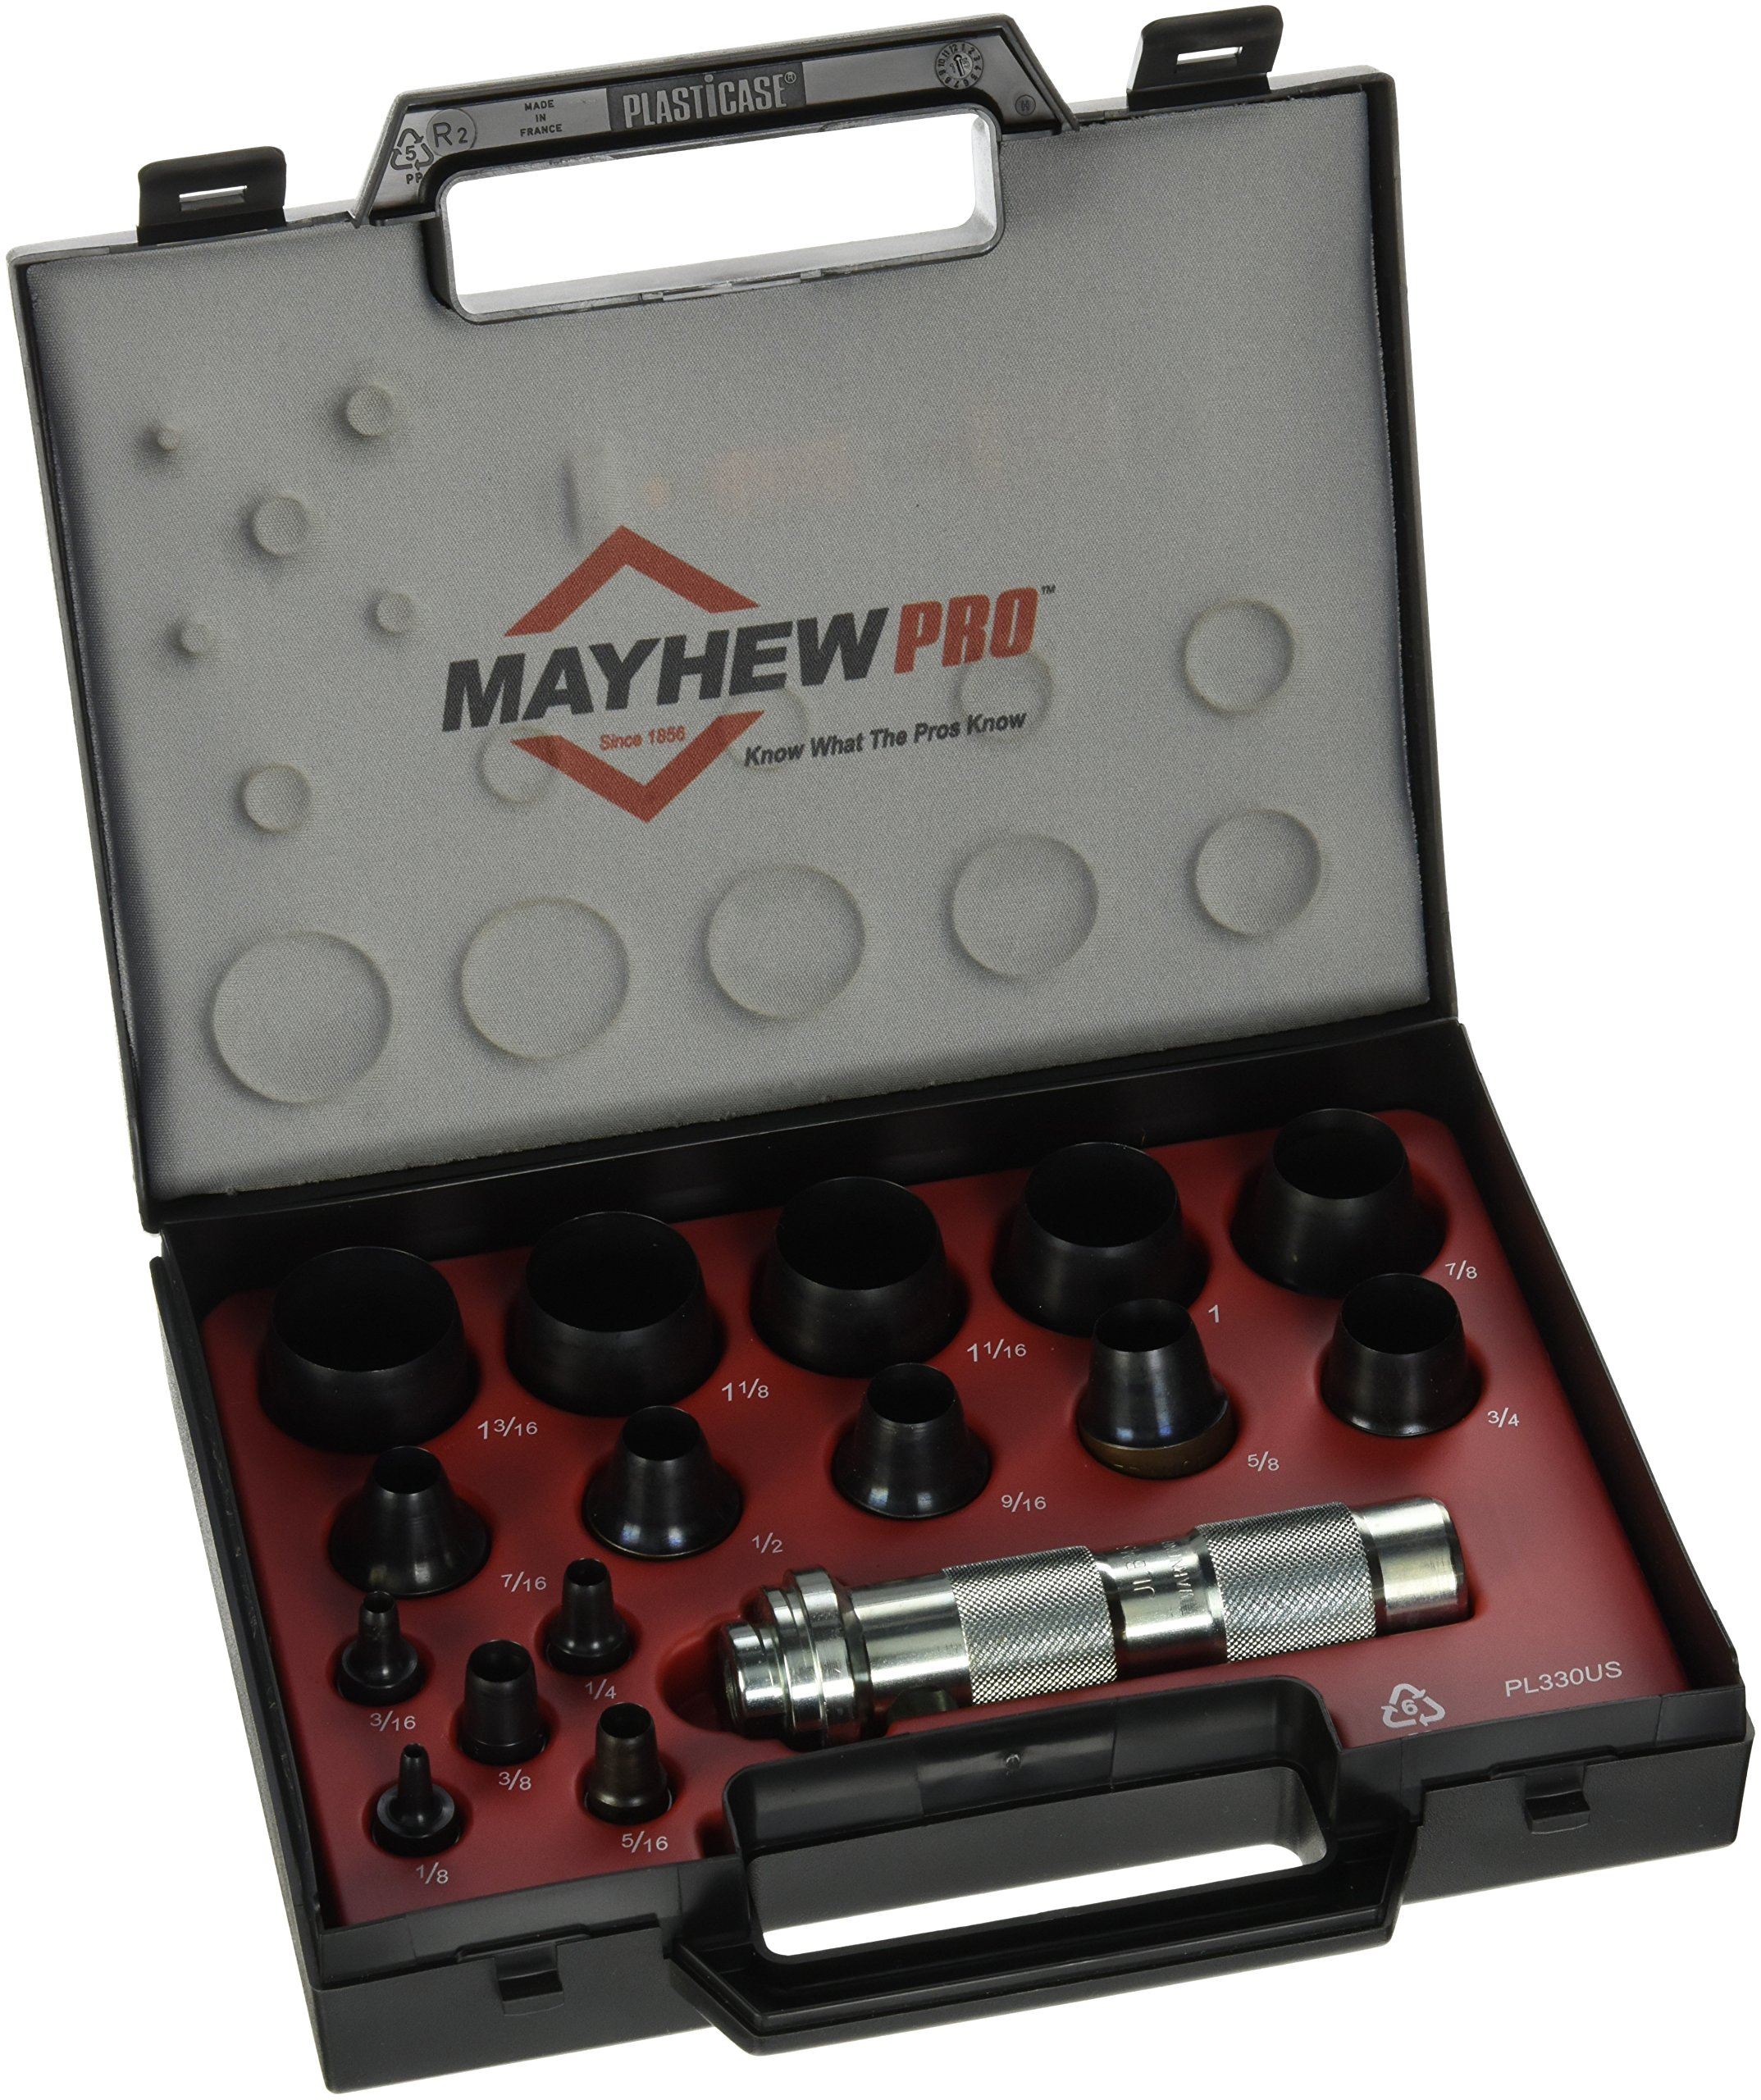 Mayhew Pro 66000 1/8-Inch to 1-3/16-Inch Imperial SAE Hollow Punch Set, 16-Piece